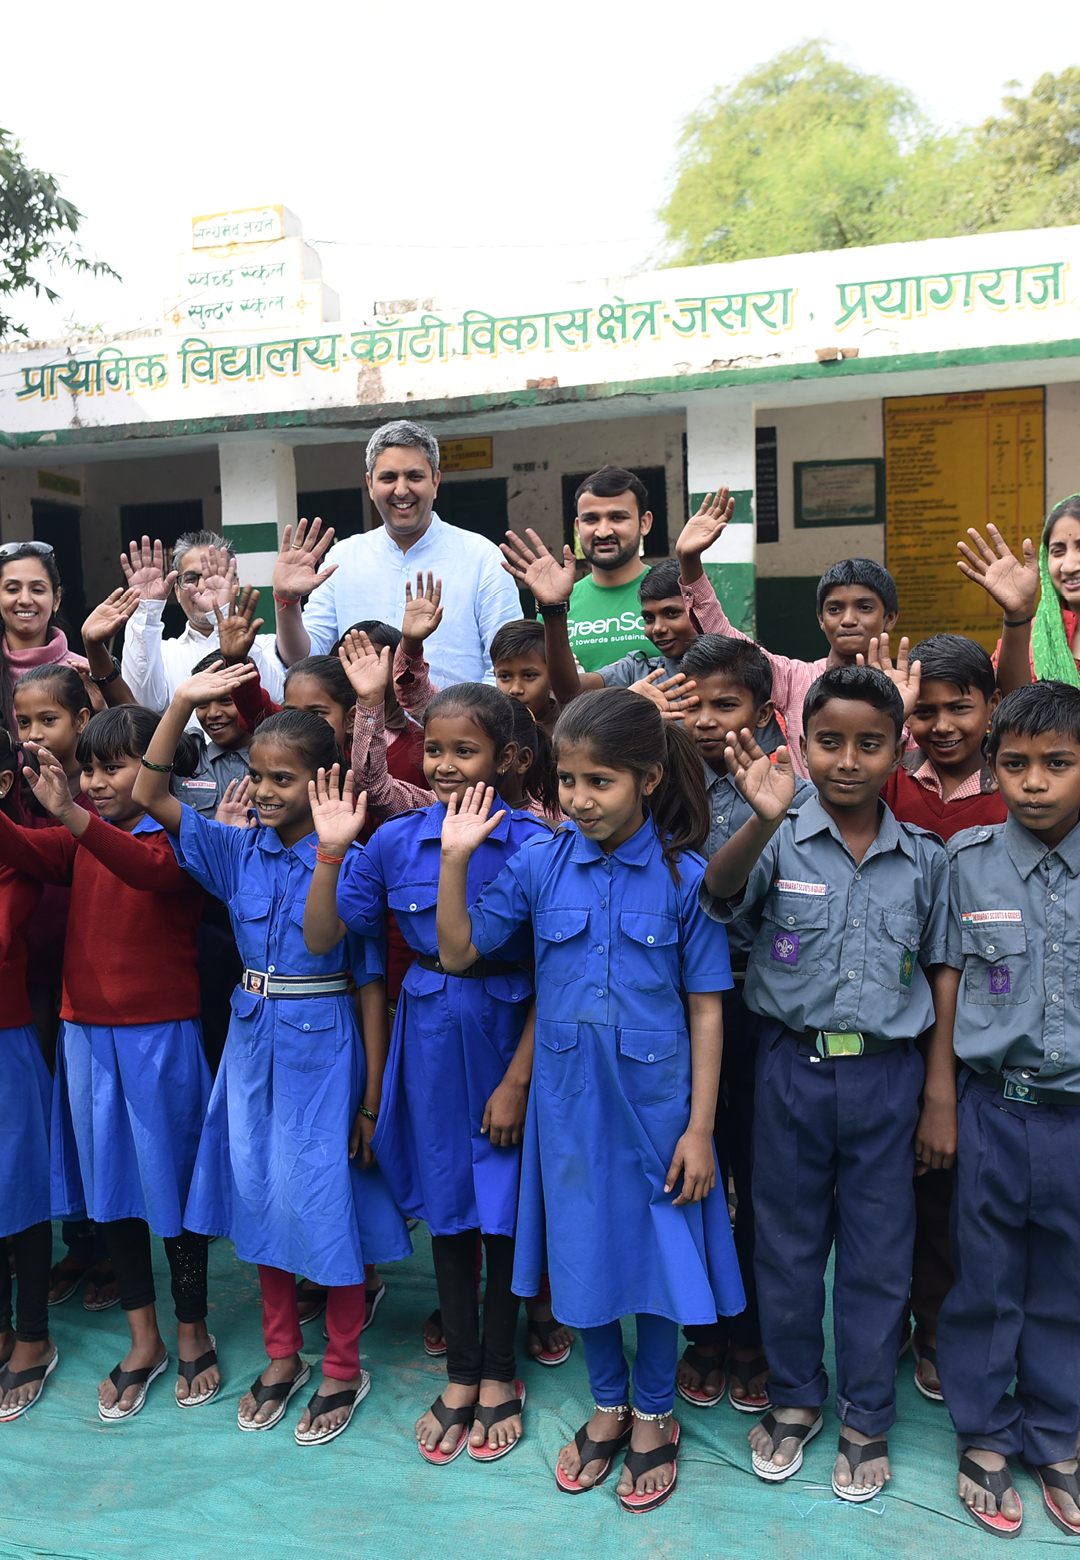 Adidas India in partnership with an Indian NGO Greensole have donated upcycled footwear to underprivileged school children in India | Adidas India | Greensole | STIRworld